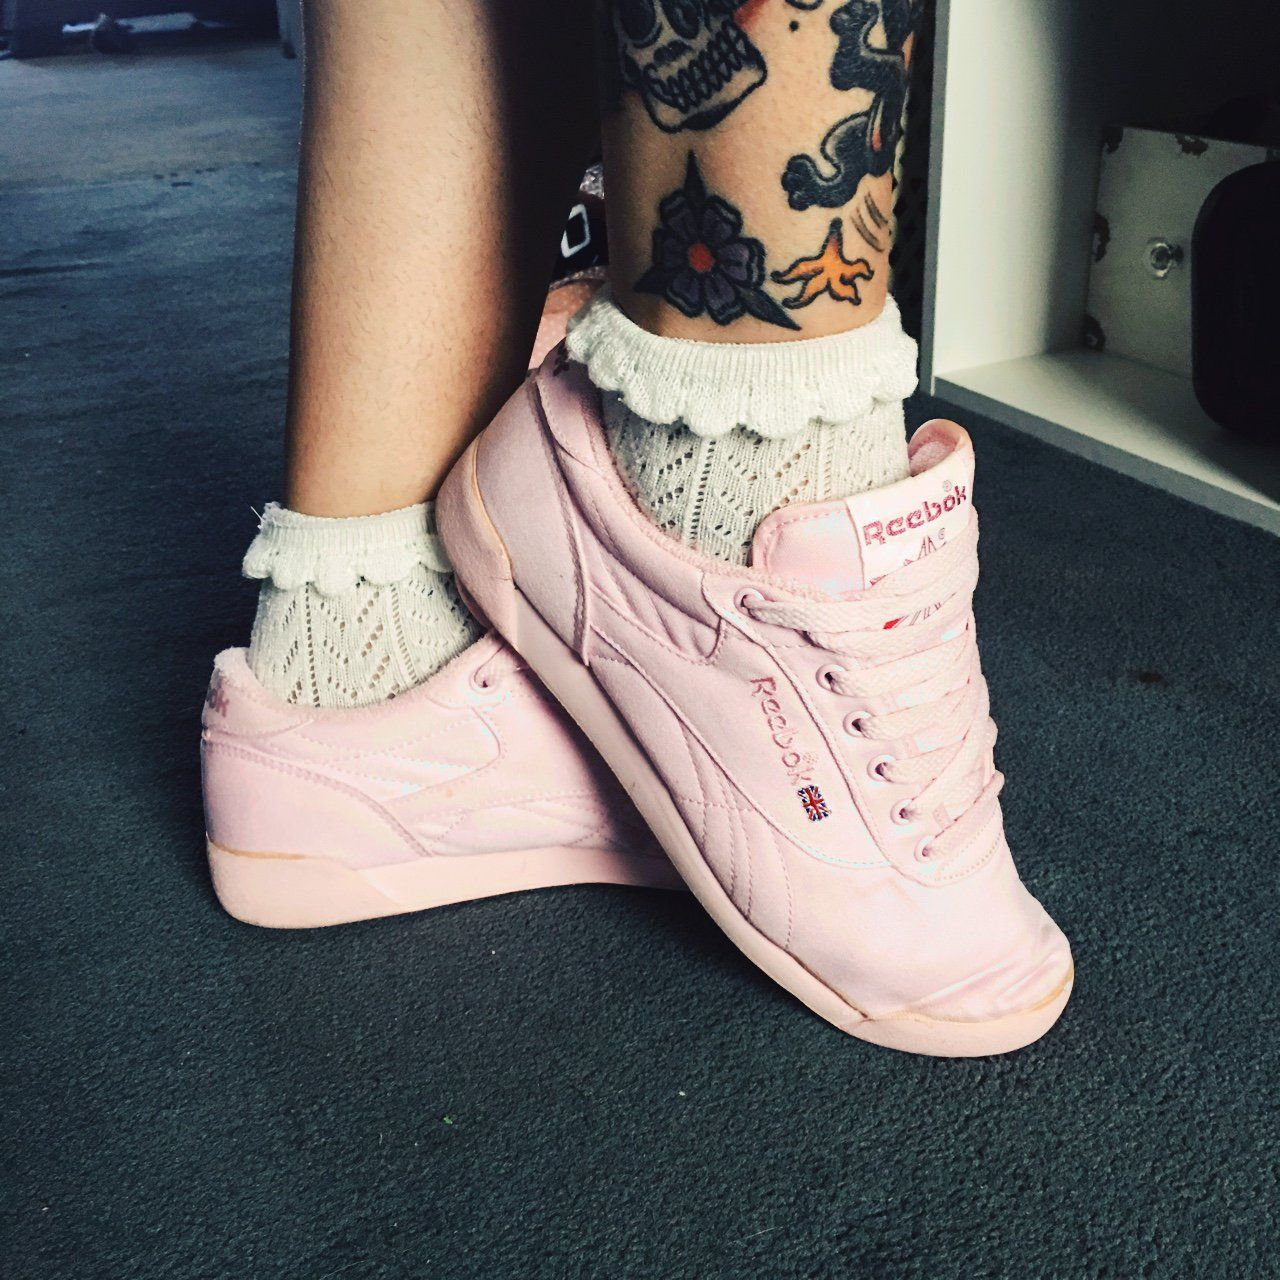 0319e336003e3 Bubble gum pink vintage Reebok s late 80s era terry cloth inside normal wear  new condition when I thrifted them I wore them handful of times only minor  ...